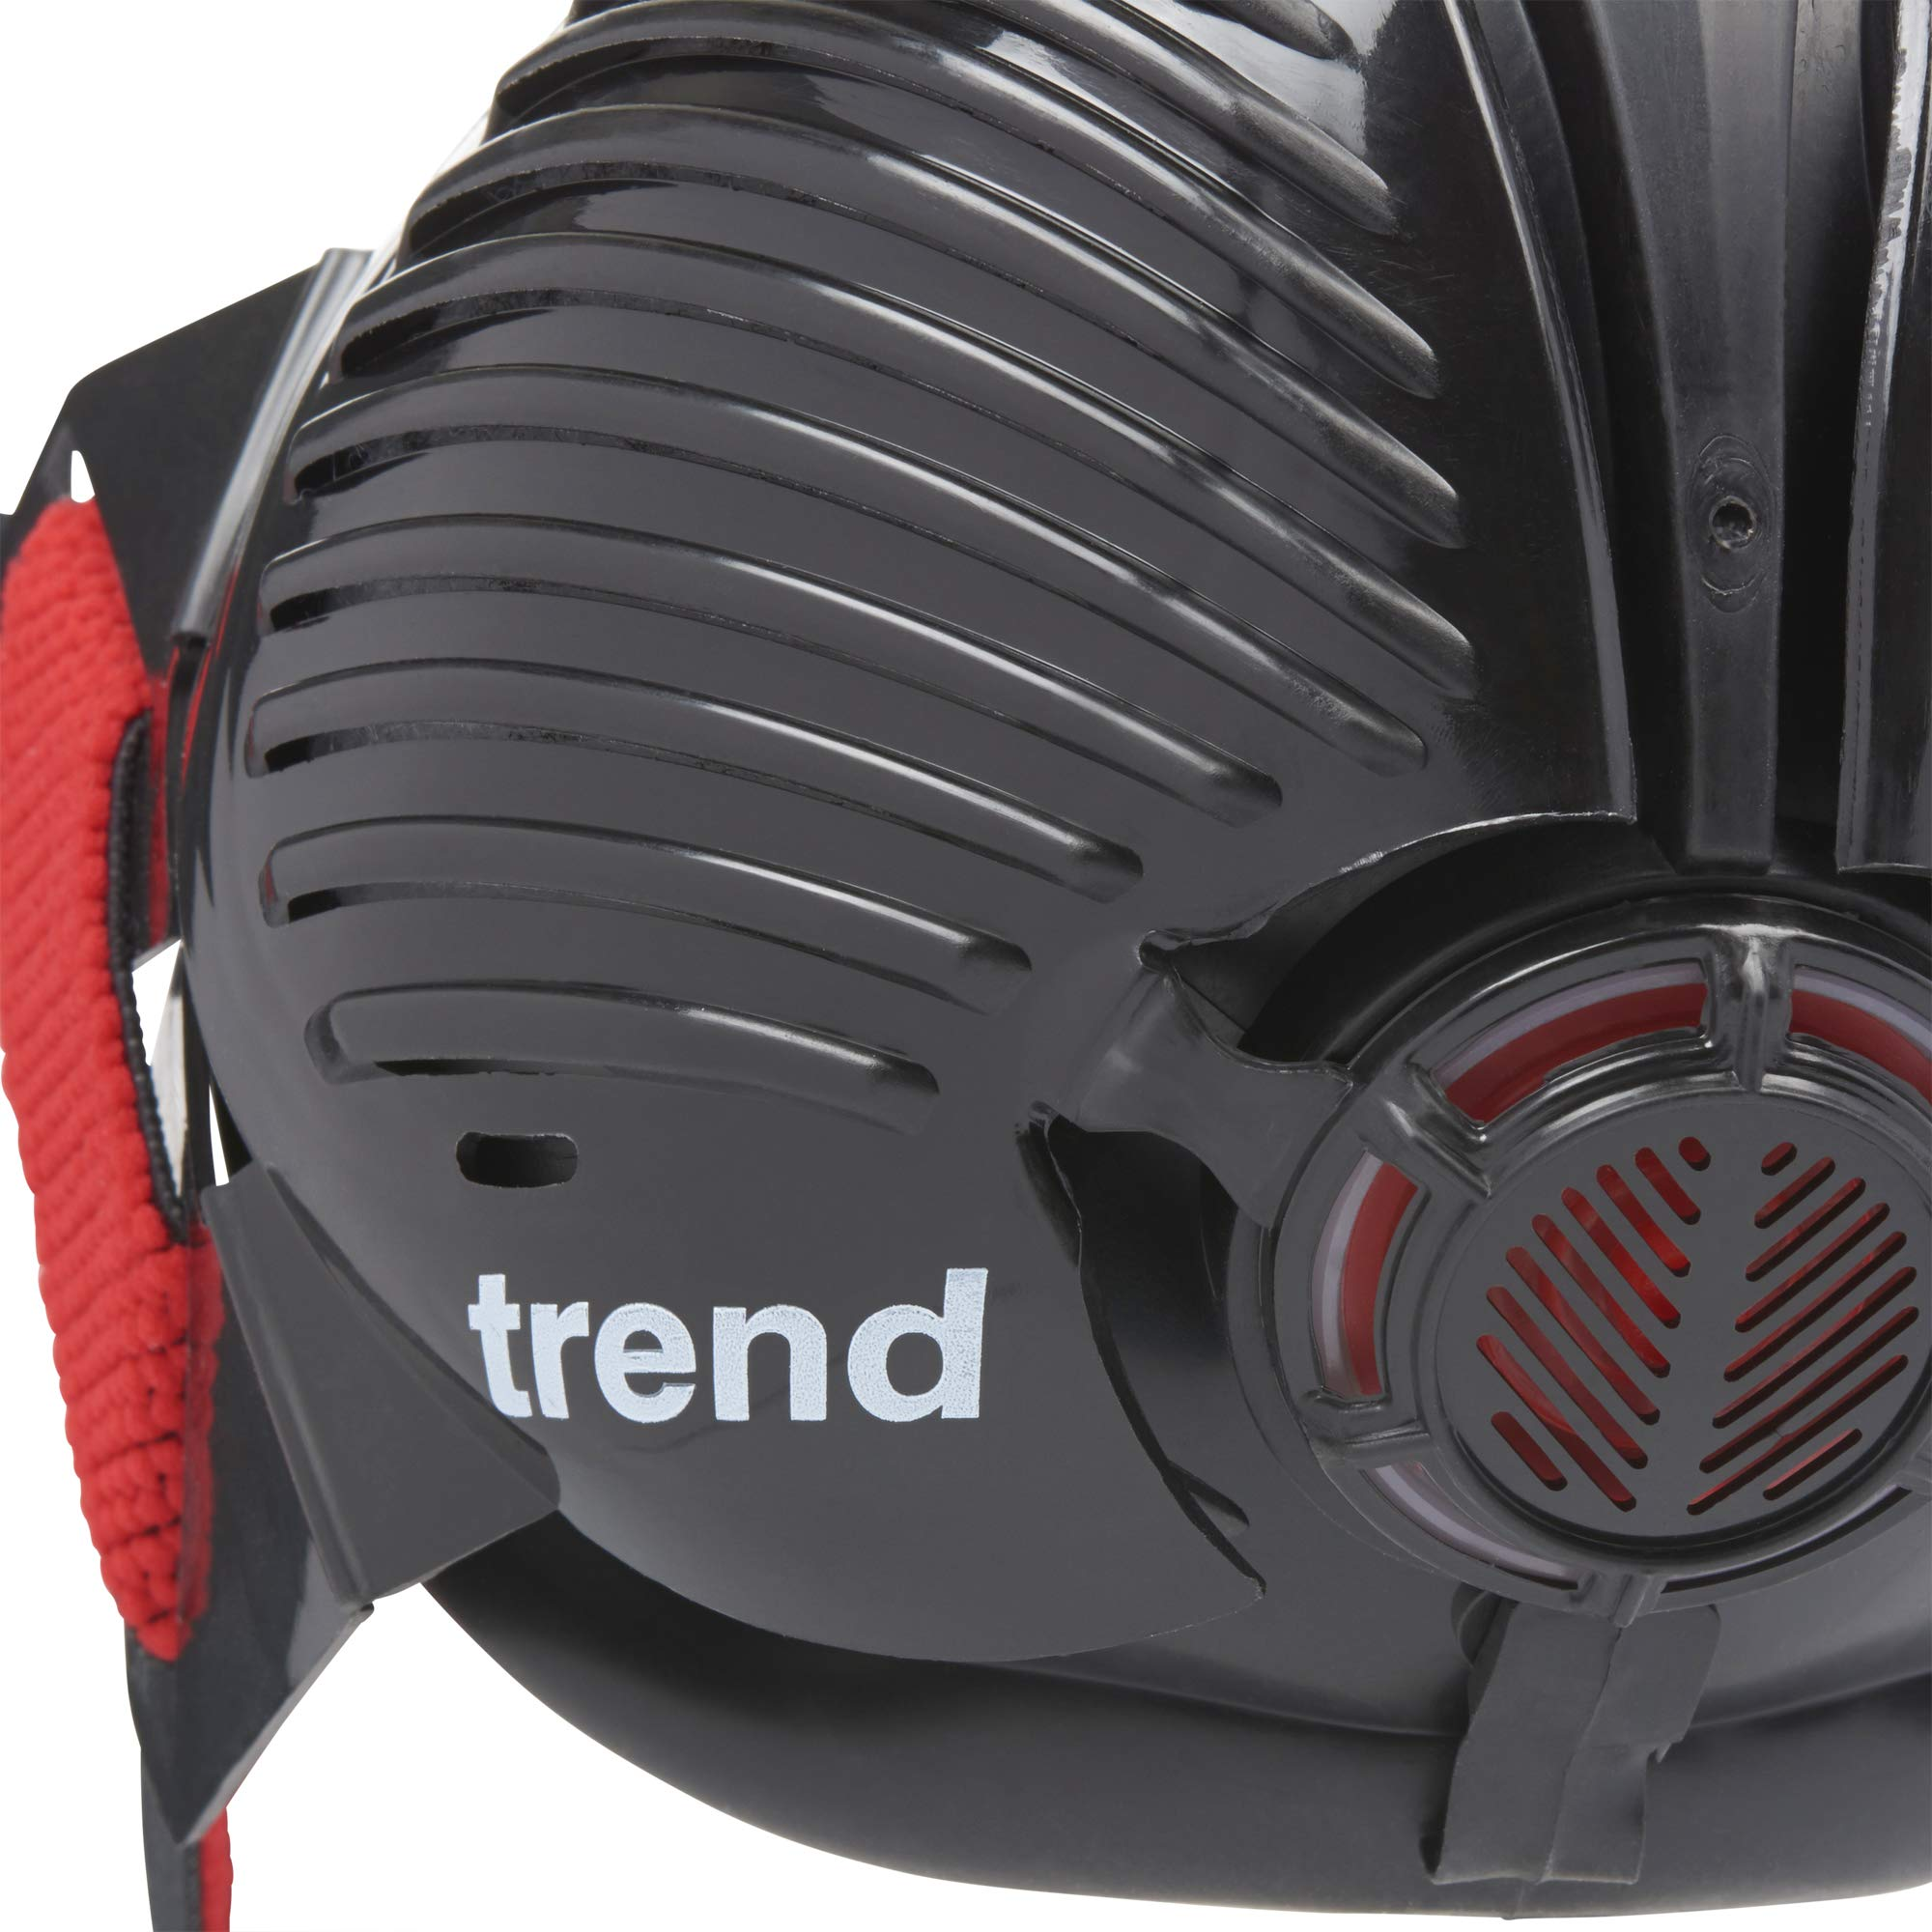 Trend STEALTH/SM Air Half Mask Small/Medium APF20 by Trend (Image #5)